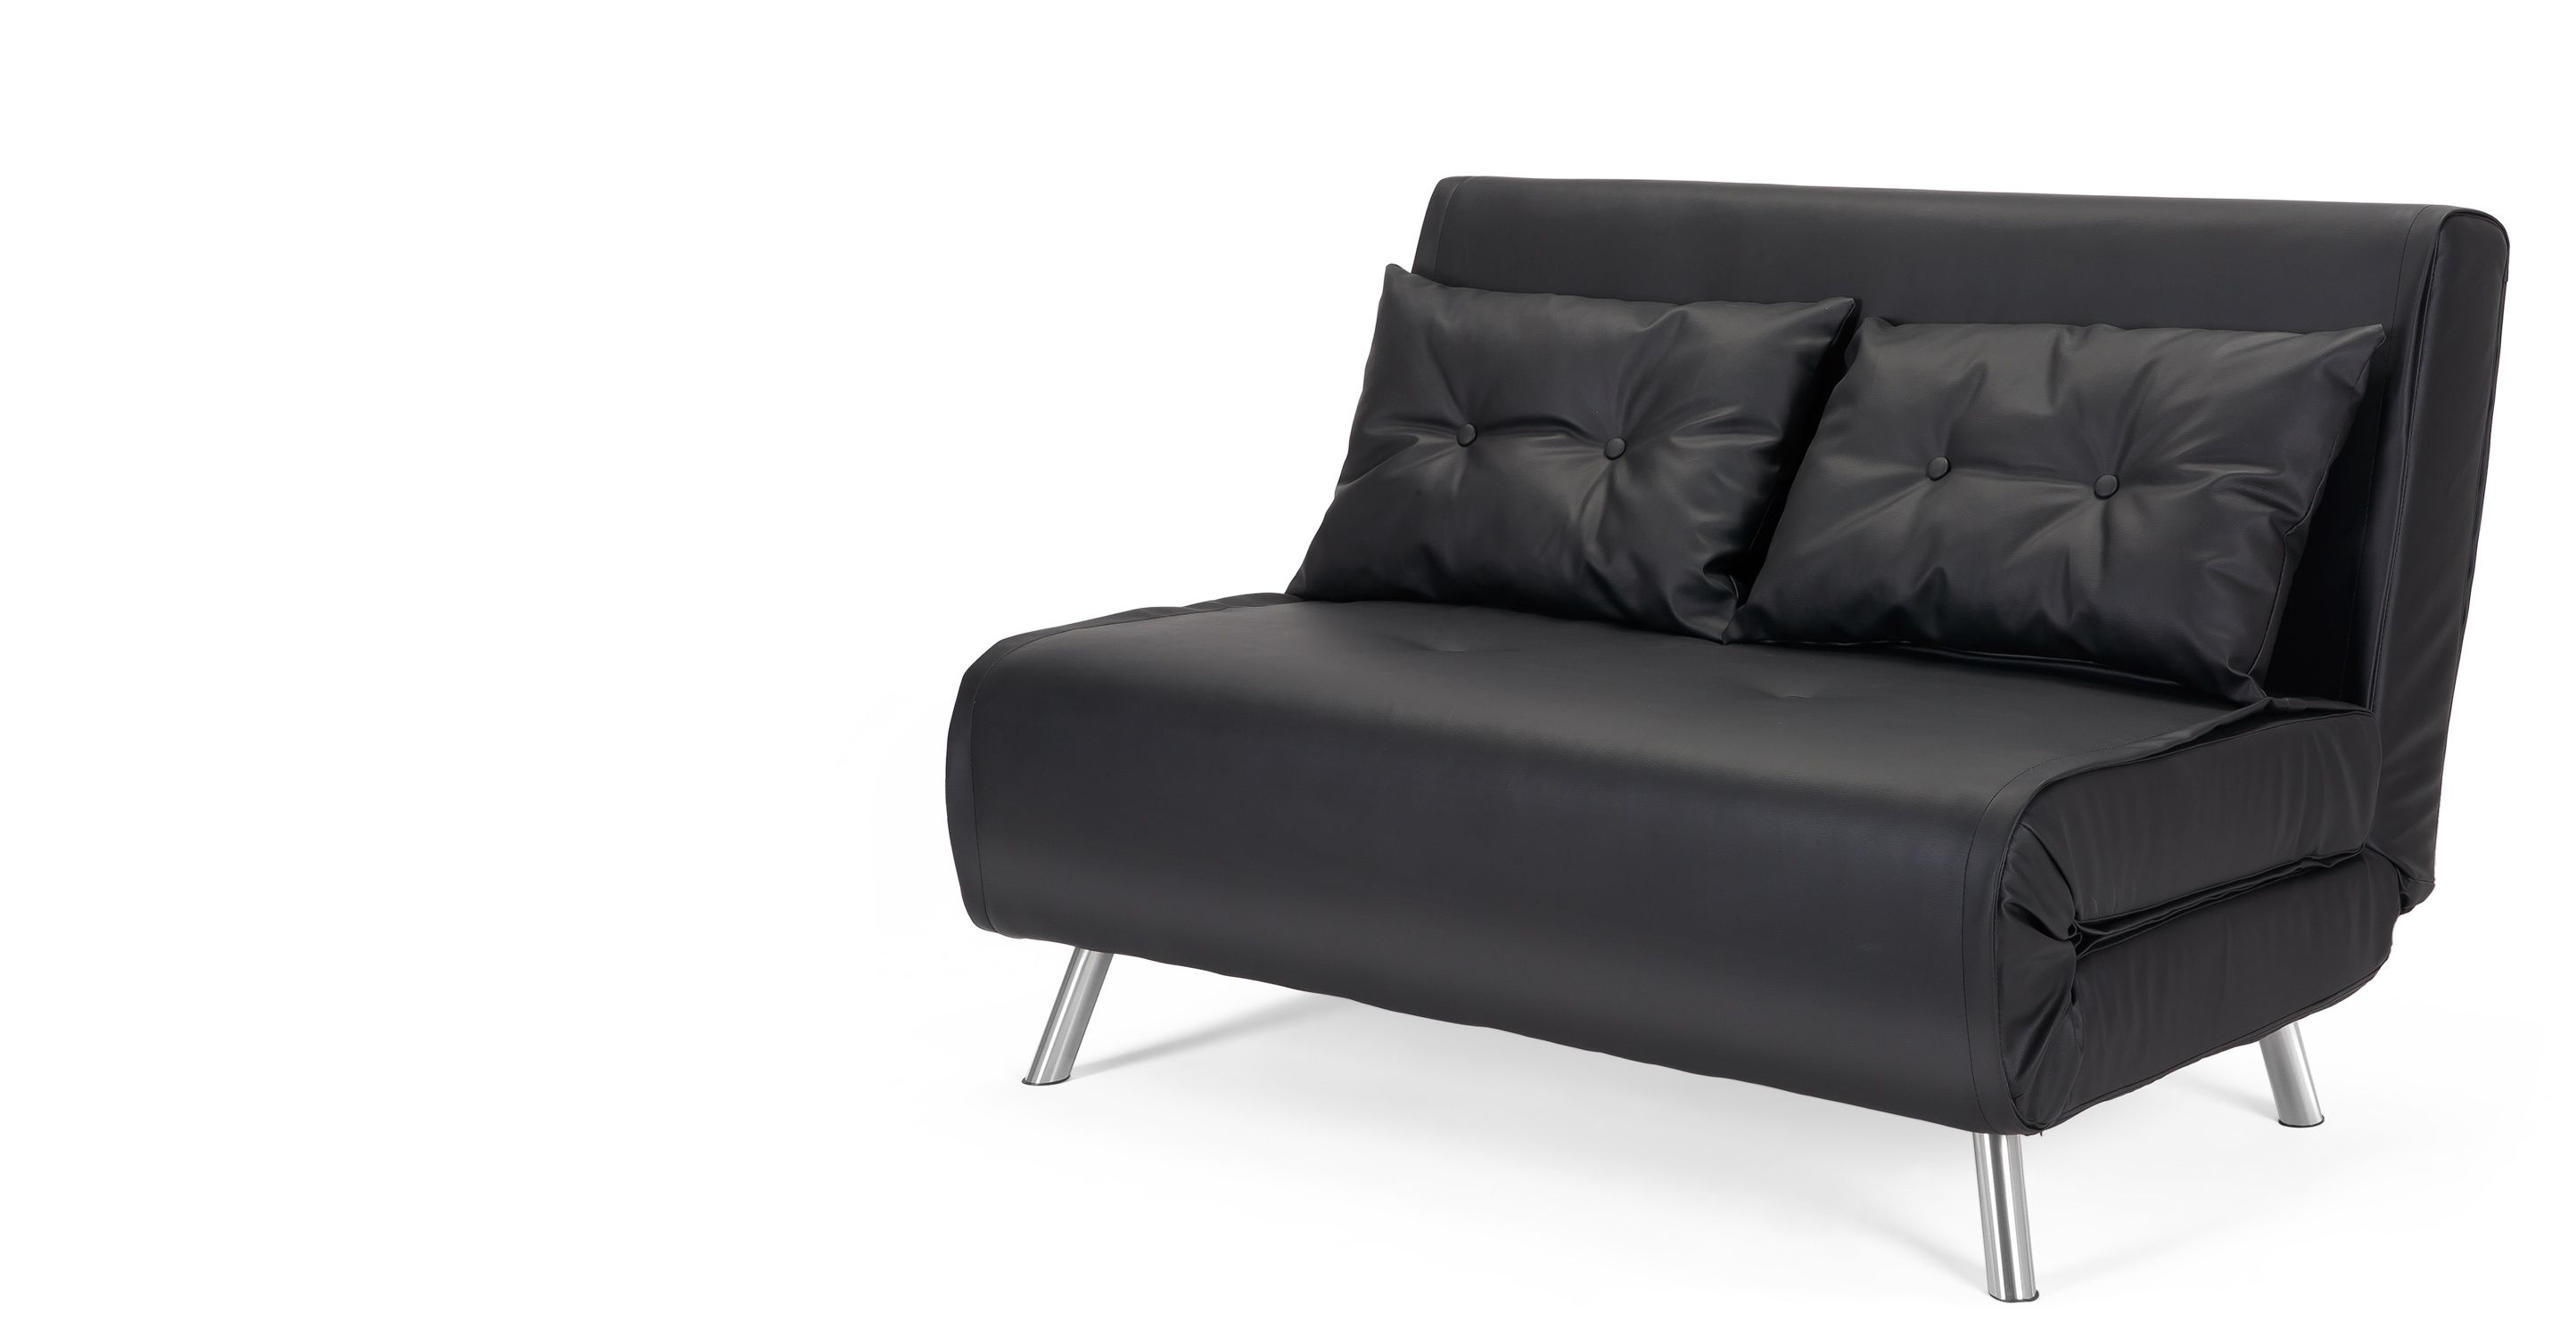 Haru Small Sofa Bed Garnet Black from Made pact in size